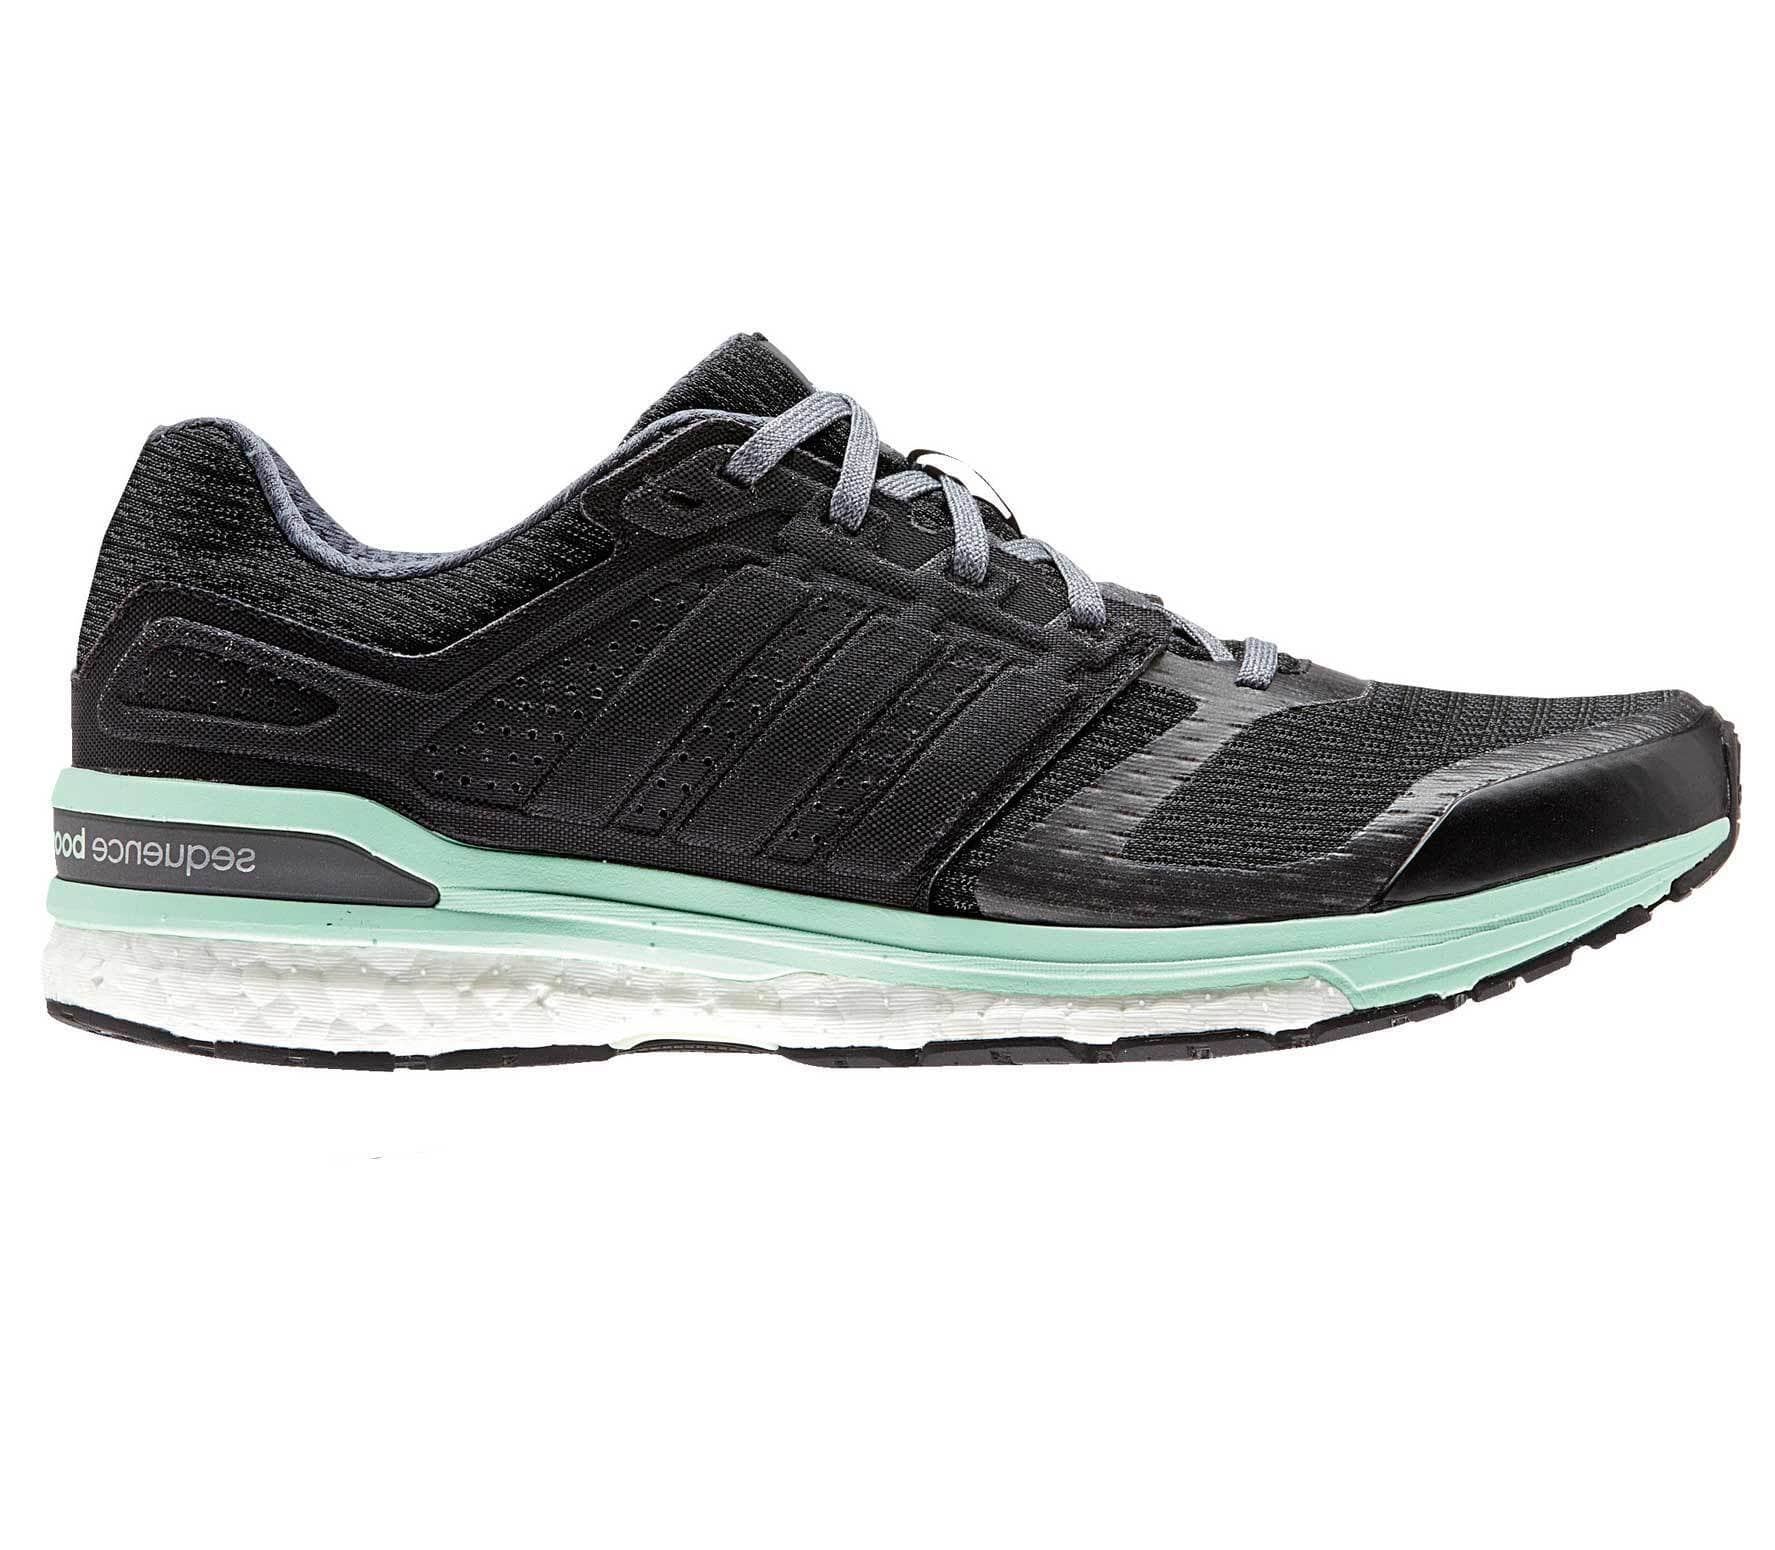 Adidas Supernova Sequence  Women S Running Shoes